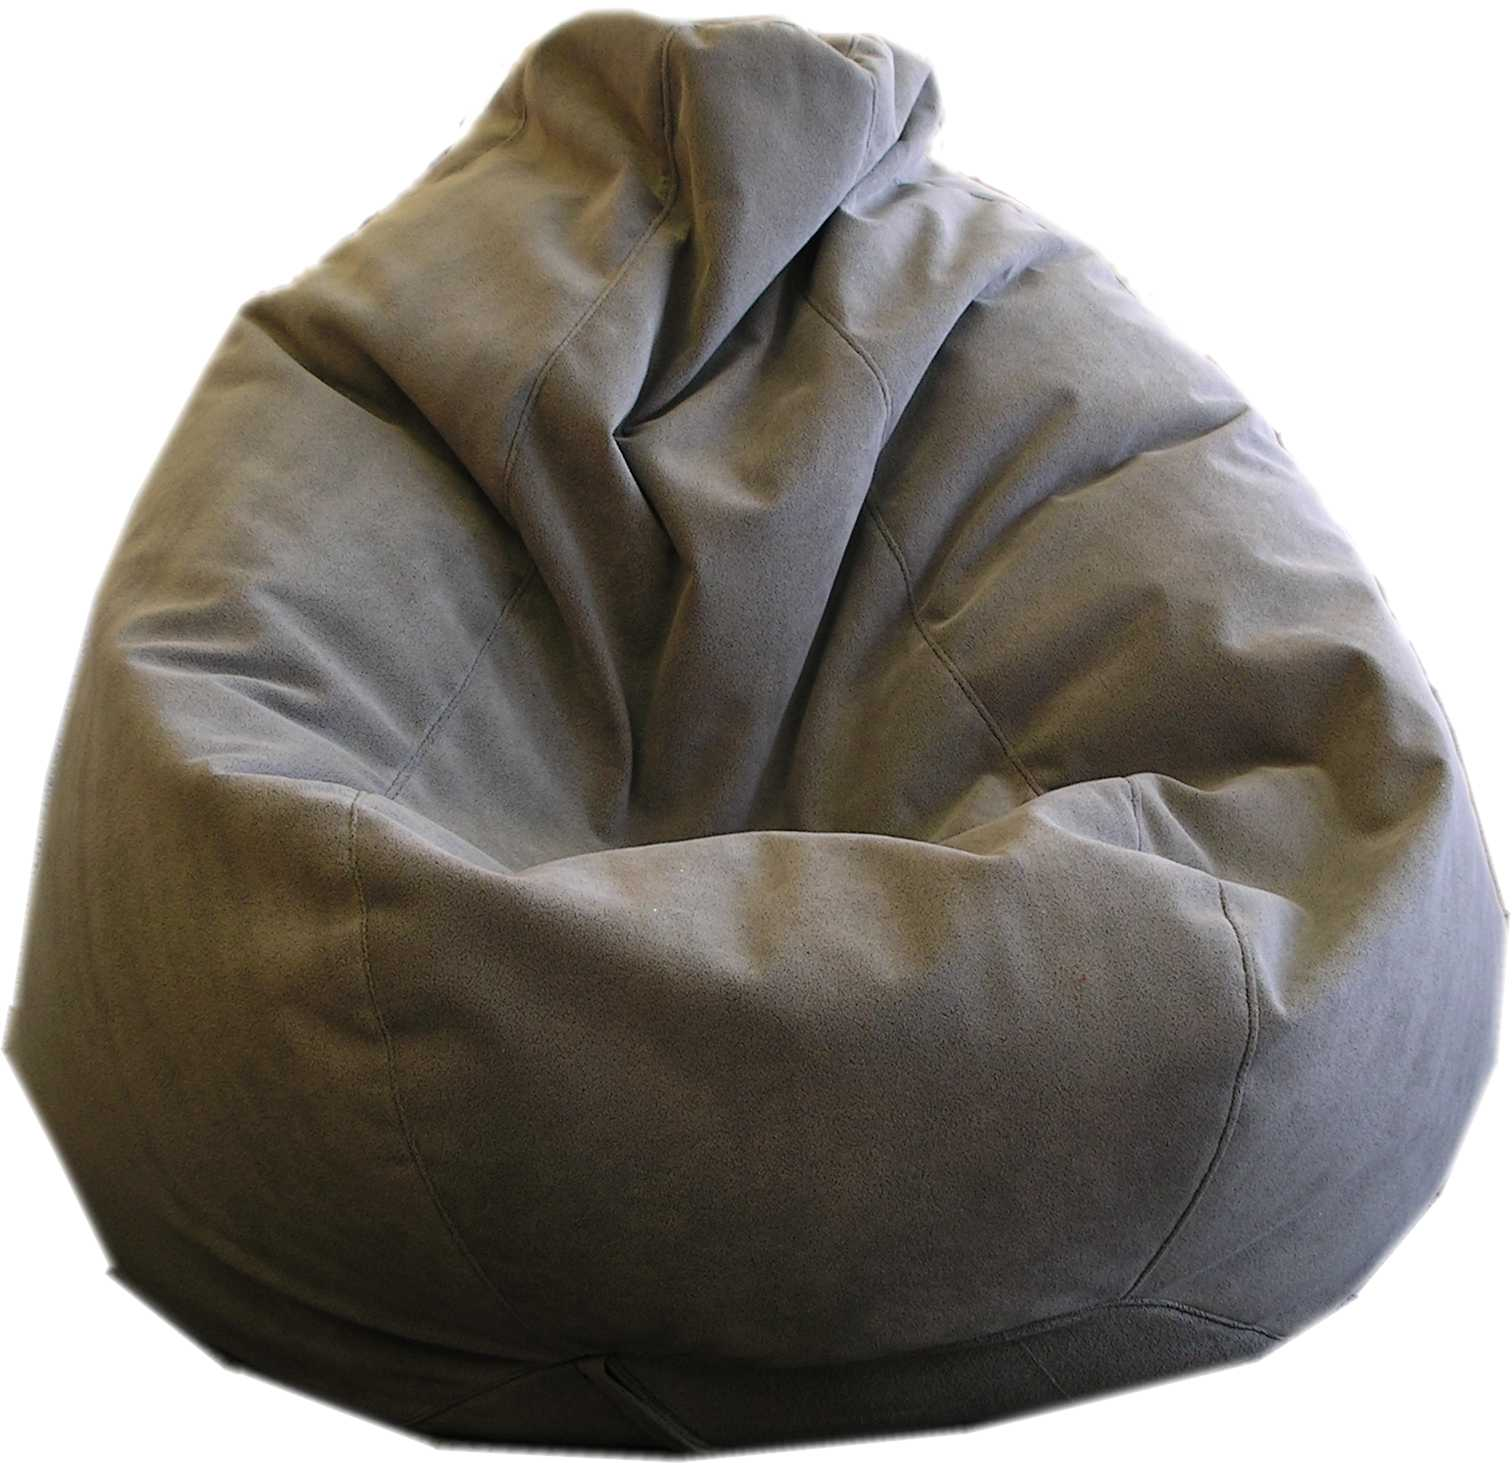 Beanbag Chairs Bean Bag Chairs Ideahomeimprovement